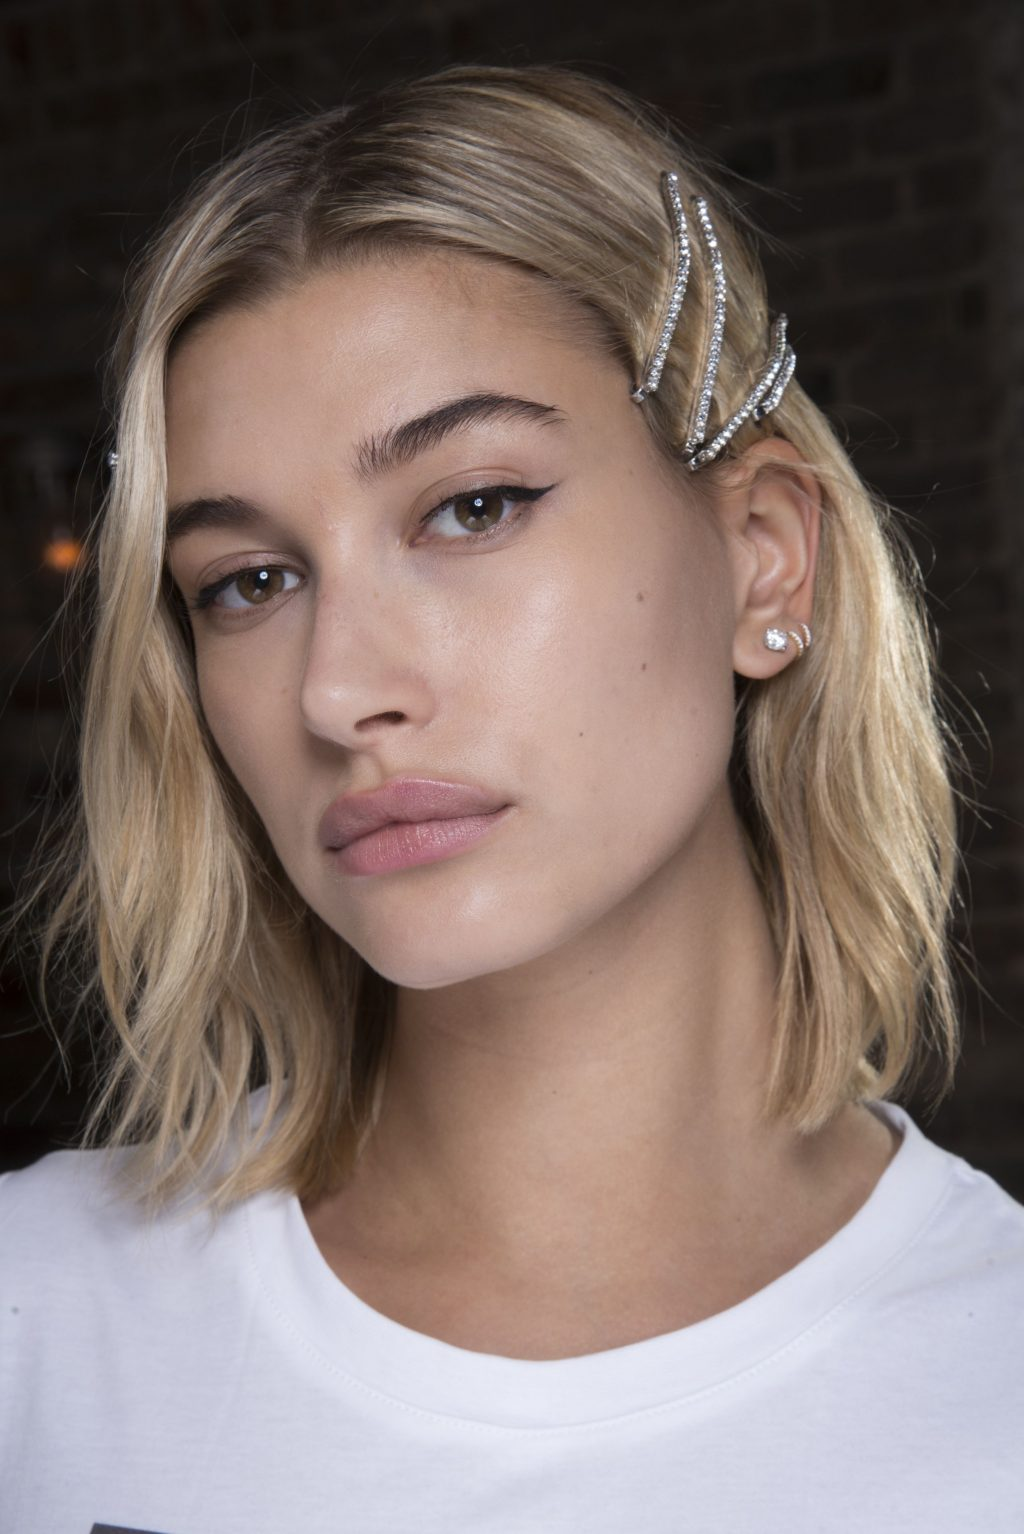 This Sparkly Trend Is About to Get All up in Your Hair